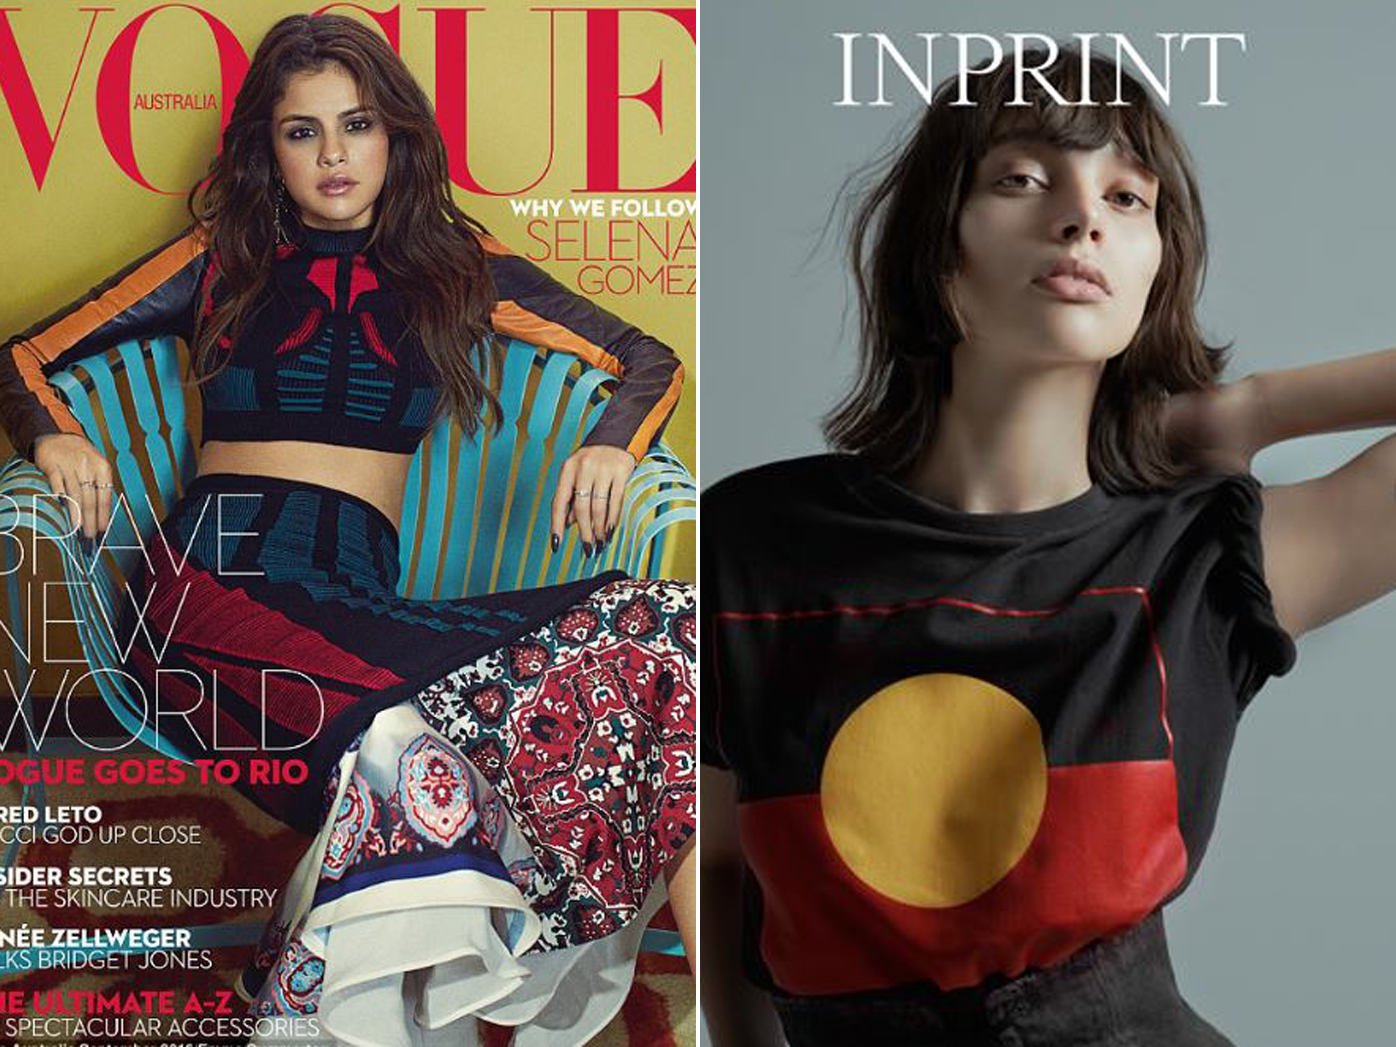 <p>Magazines may be falling off newsstands (goodbye <em>Dolly</em>) but the remaining titles continue to deliver high fashion with a local slant.</p> <p>We take a look at the top 10 covers that made an impact on what we wore, what we read and what we attempted to copy on a Saturday night.</p>